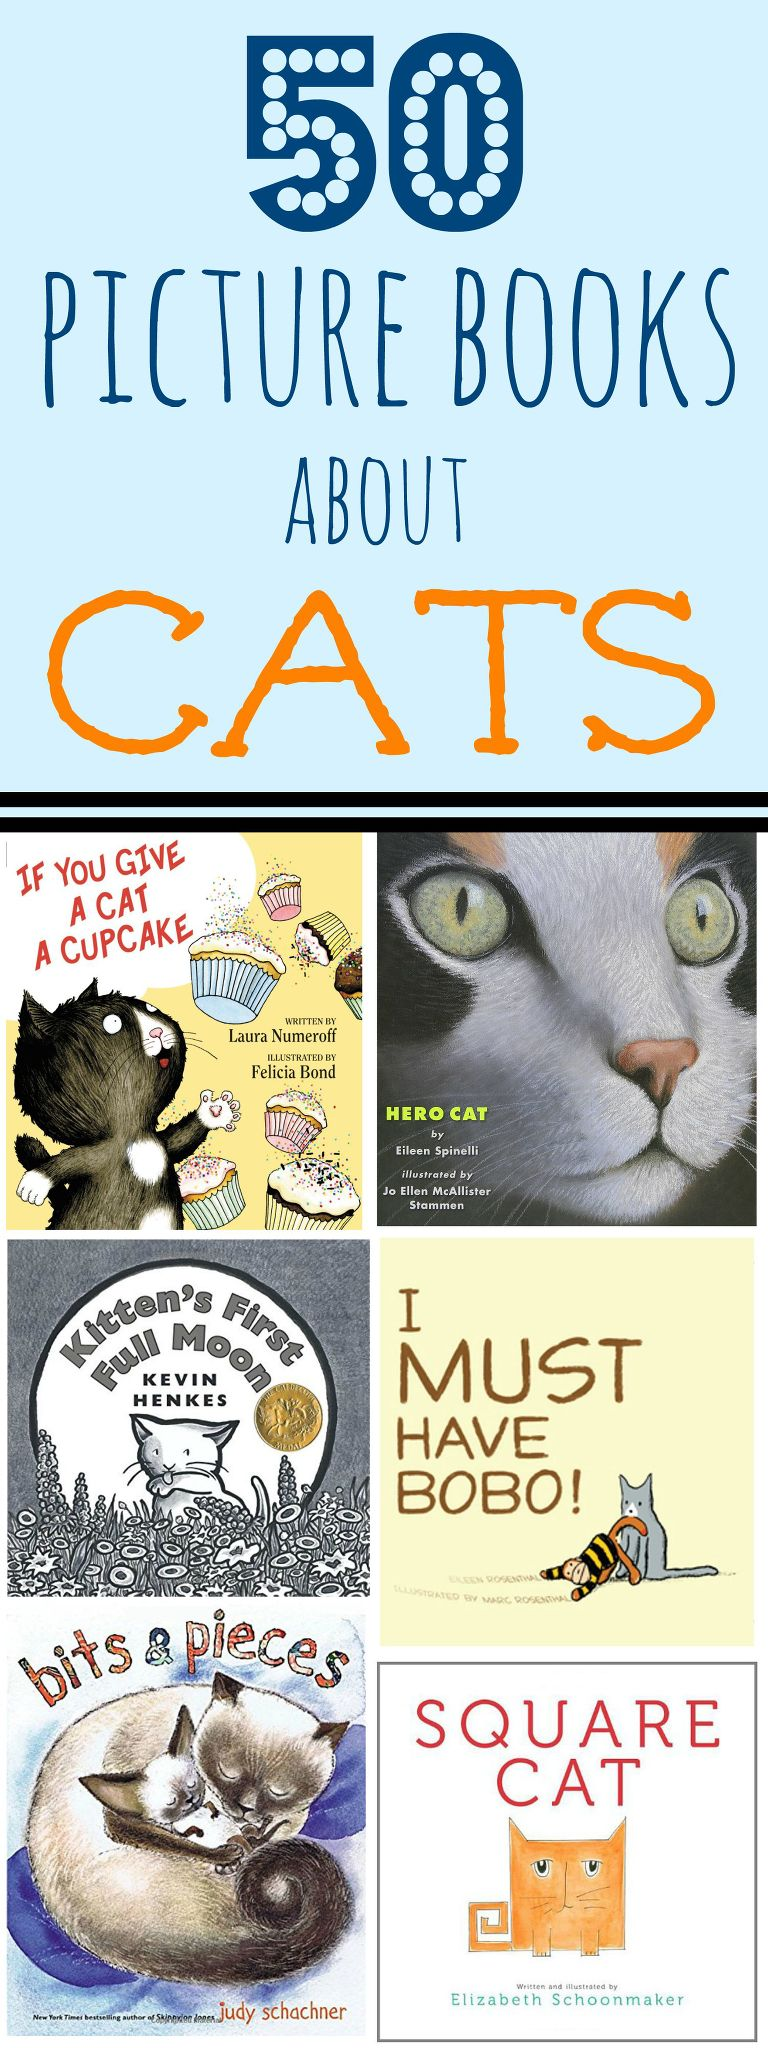 50 picture books about cats